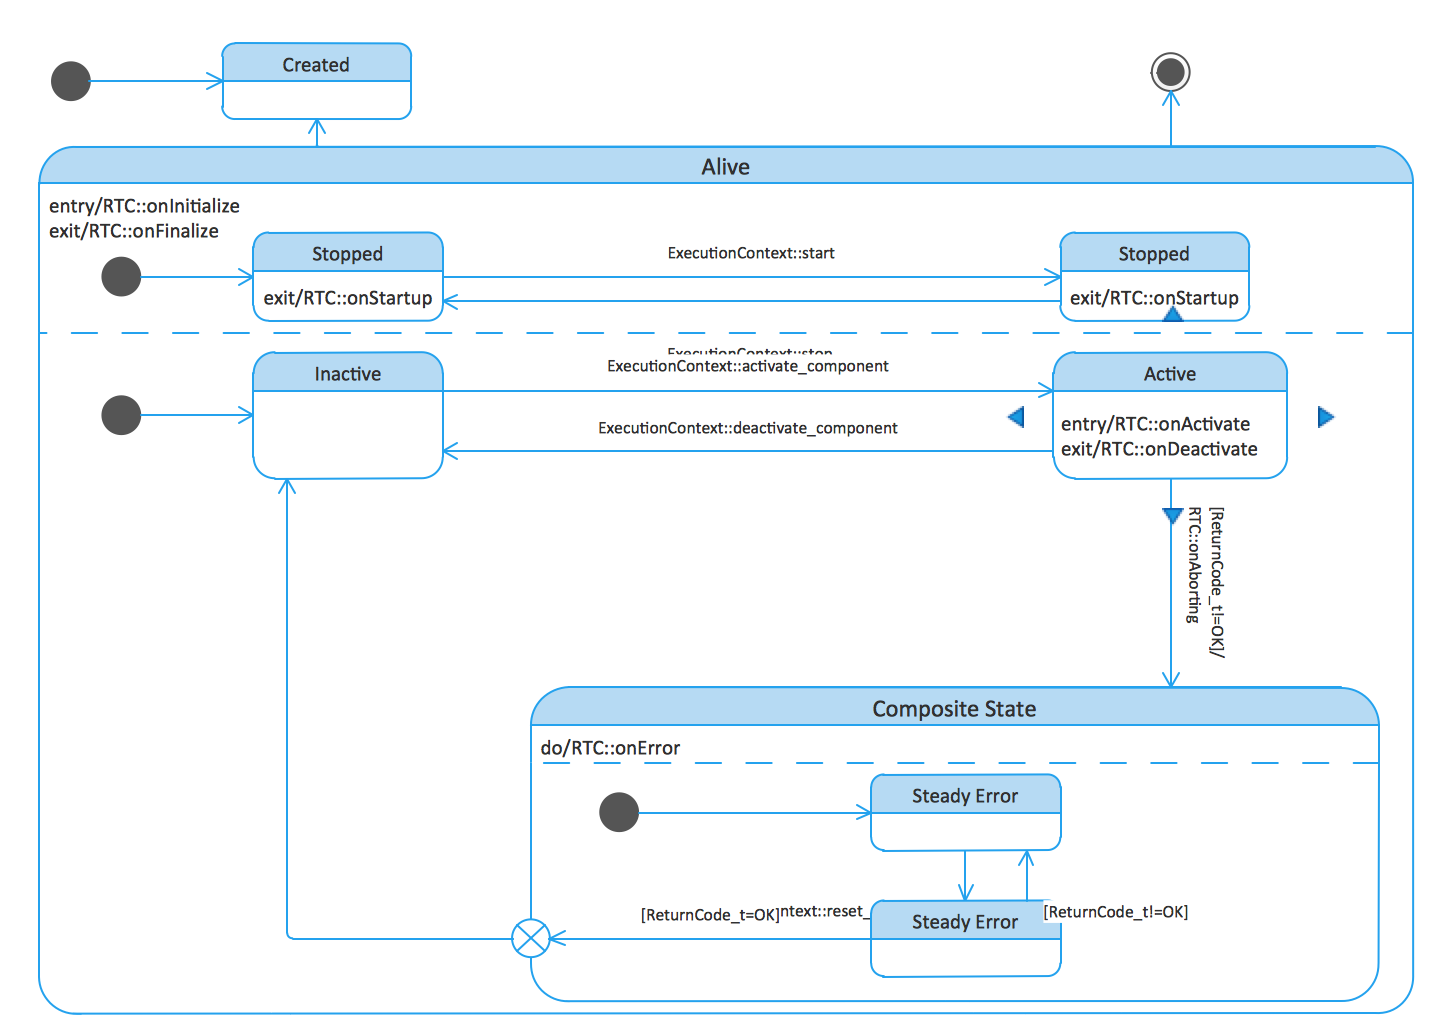 Uml tool uml diagram examples uml state machine diagrams state transitions of rt component state transitions of rt component timing diagrams ccuart Gallery